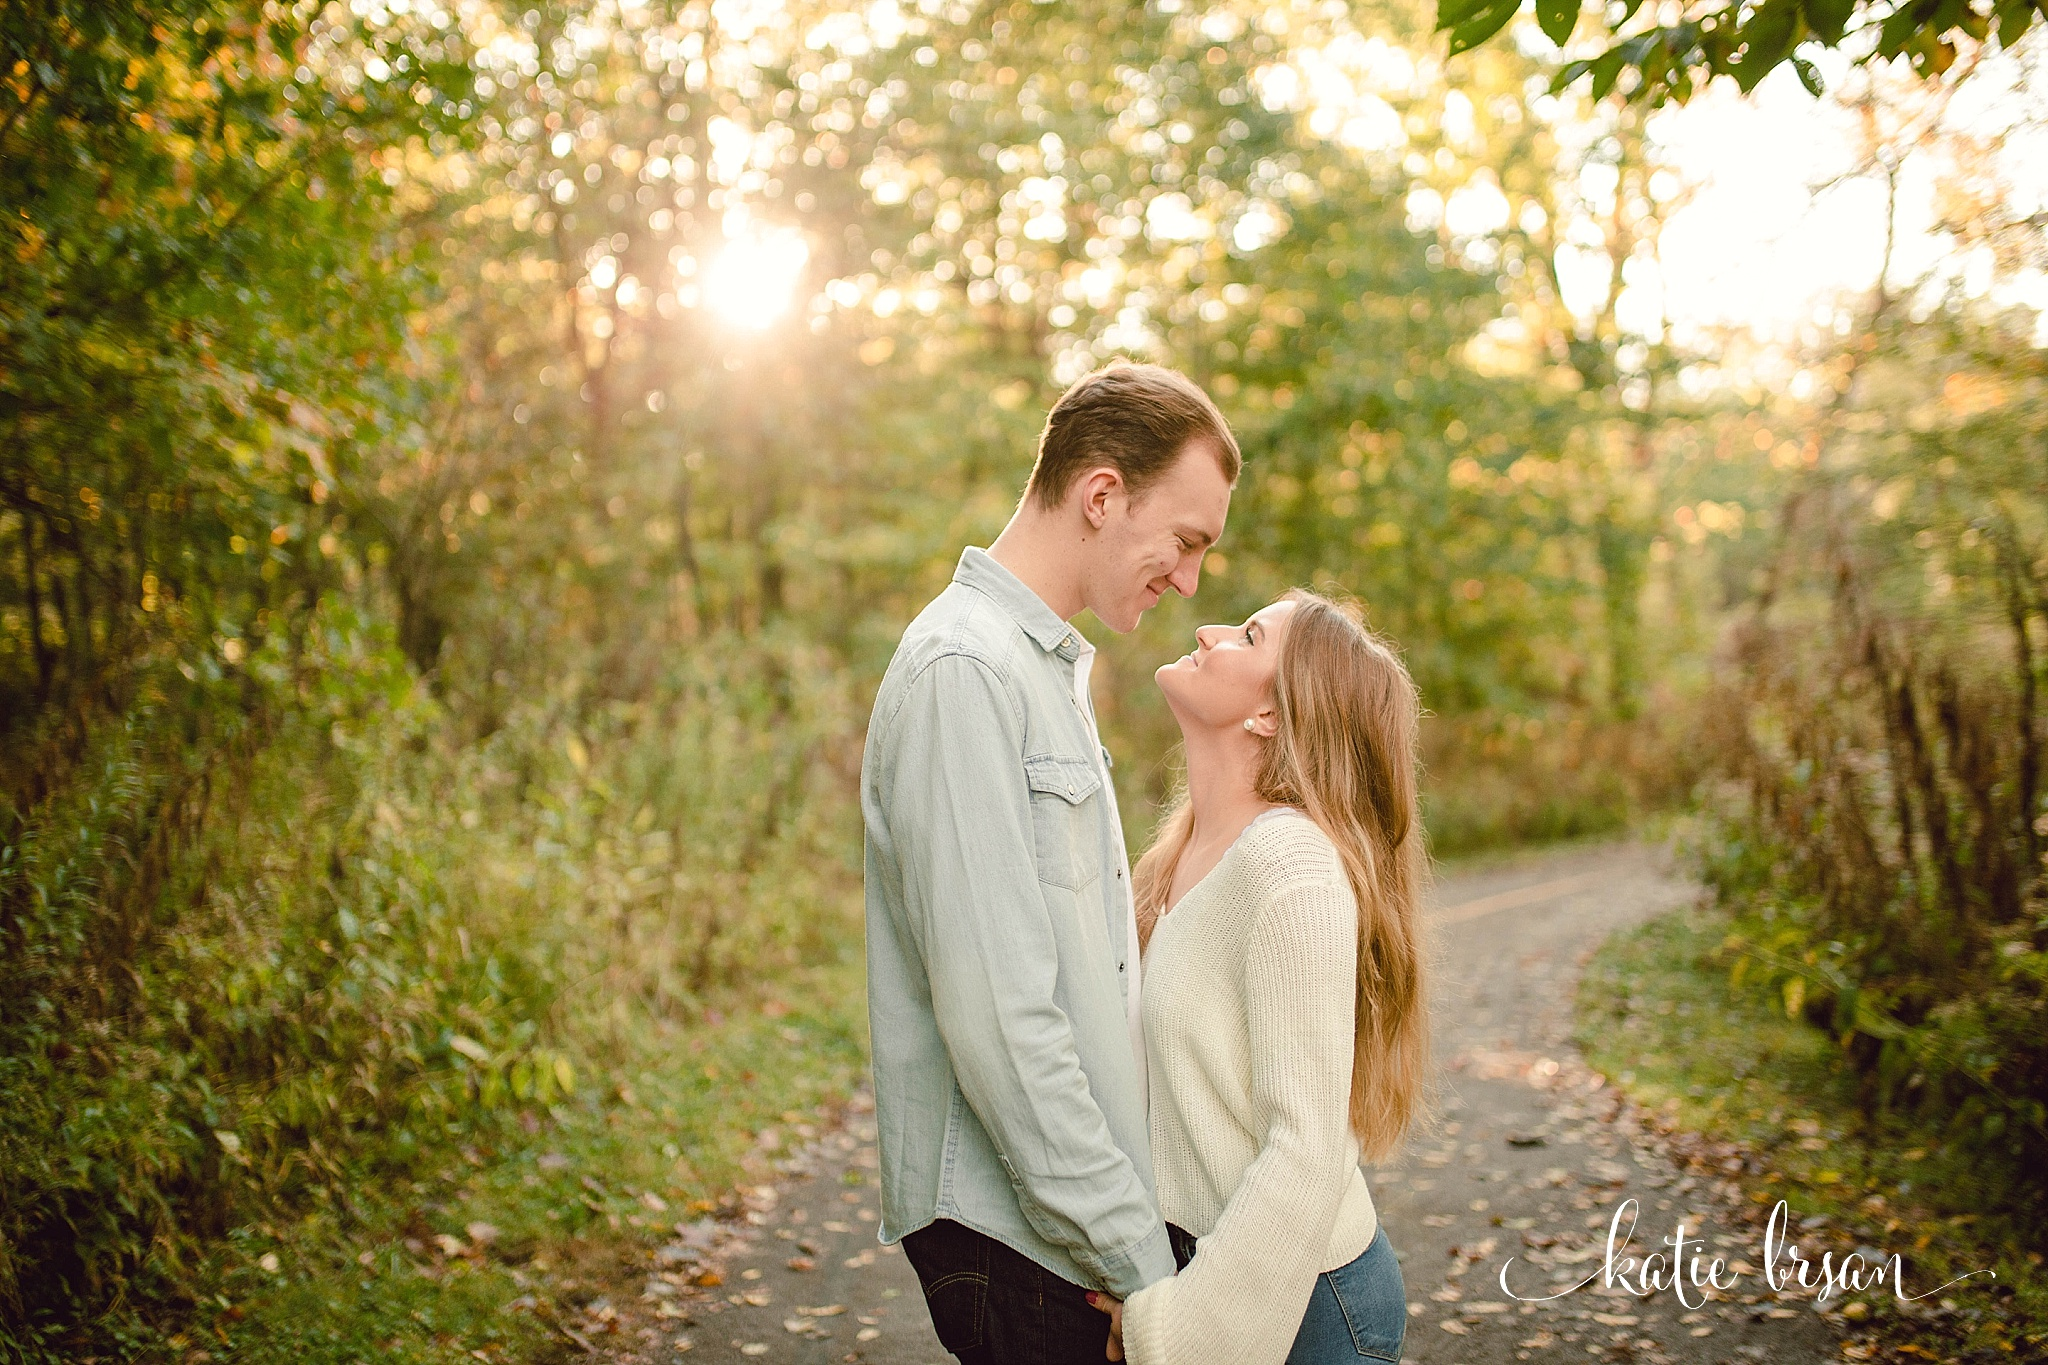 Mokena_EngagementSession_ChicagoWeddingPhotographer_1189.jpg